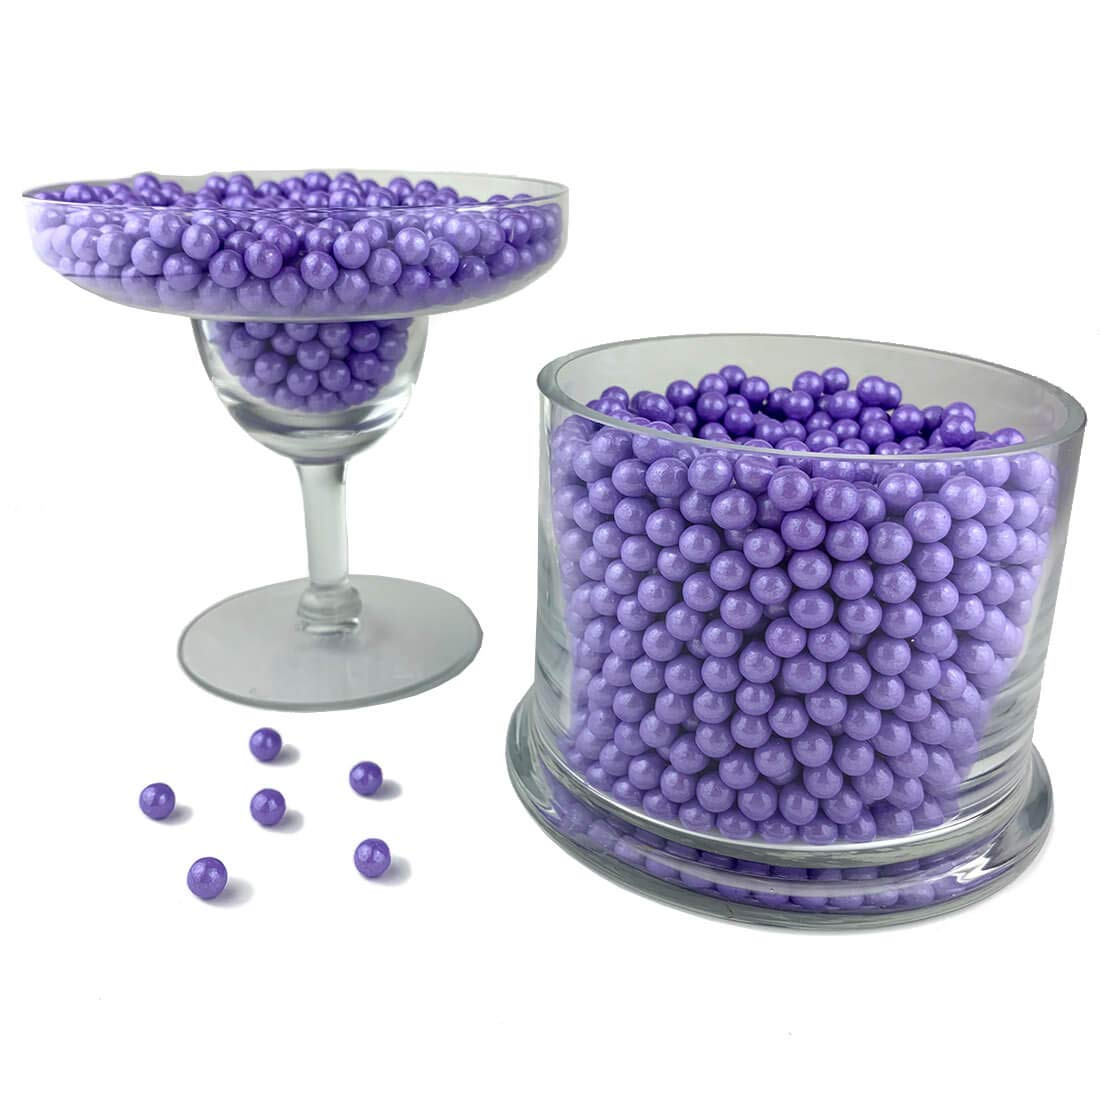 Color It Candy Shimmer Lavender Pearls 2 Lb Bag - Perfect For Table Centerpieces, Weddings, Birthdays, Candy Buffets, & Party Favors.